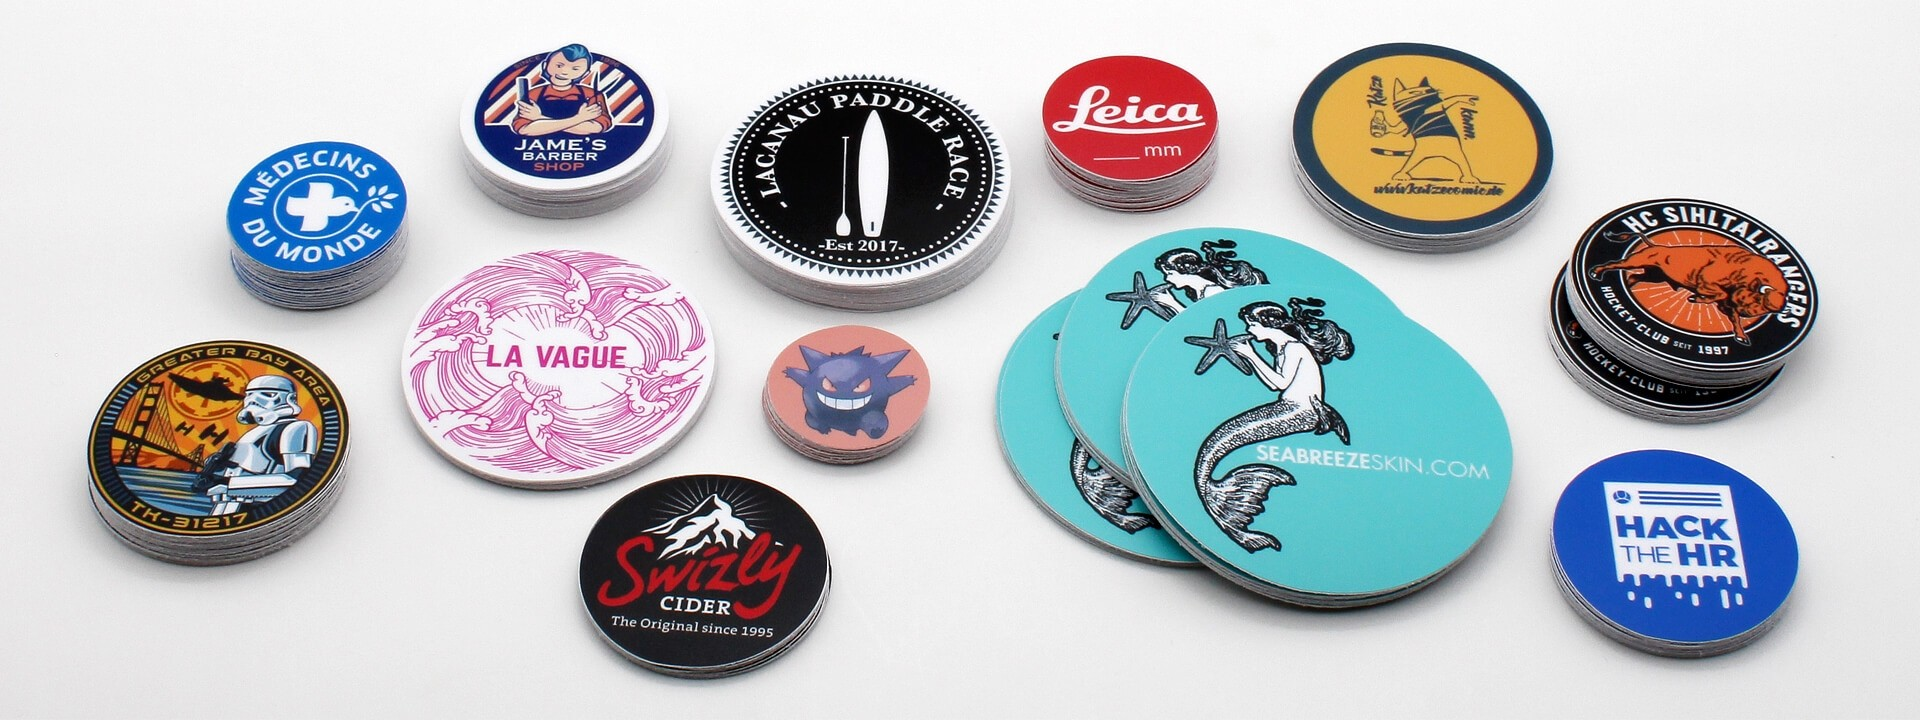 Custom stickers in round shape made in switzerland fast delivery